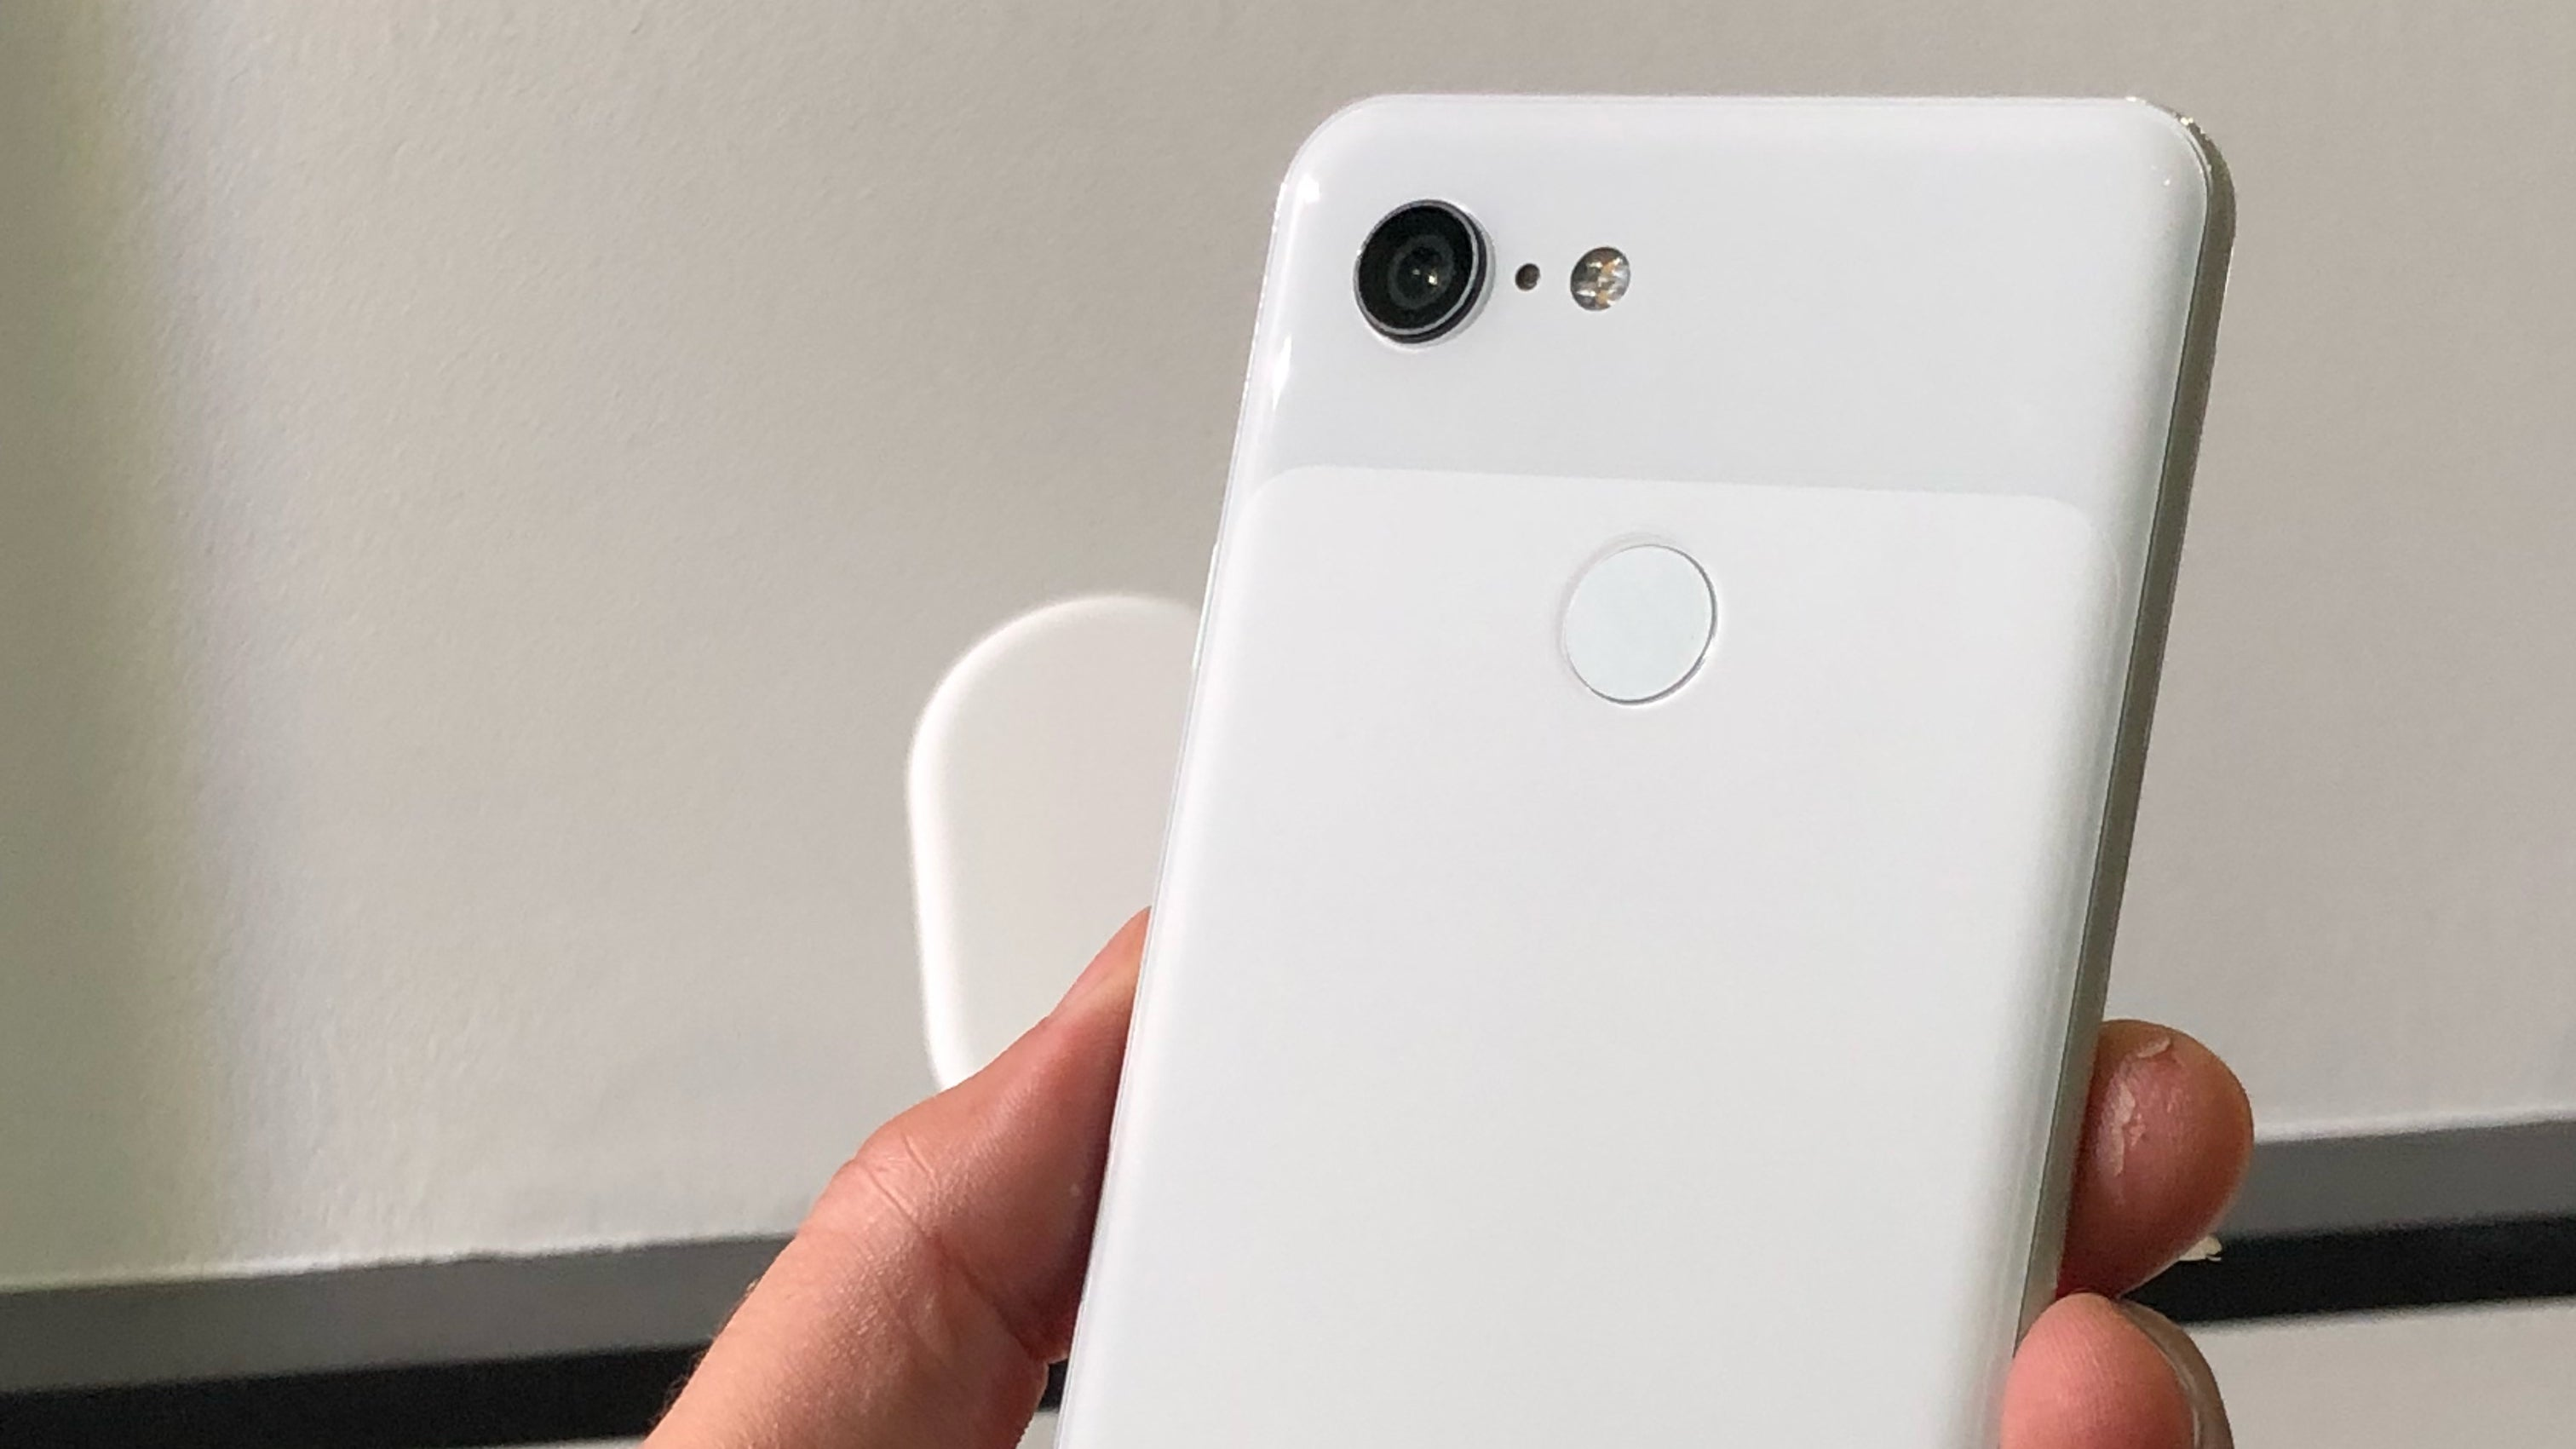 android feature google mobile pixel pixel-3 rumours saga smartphones